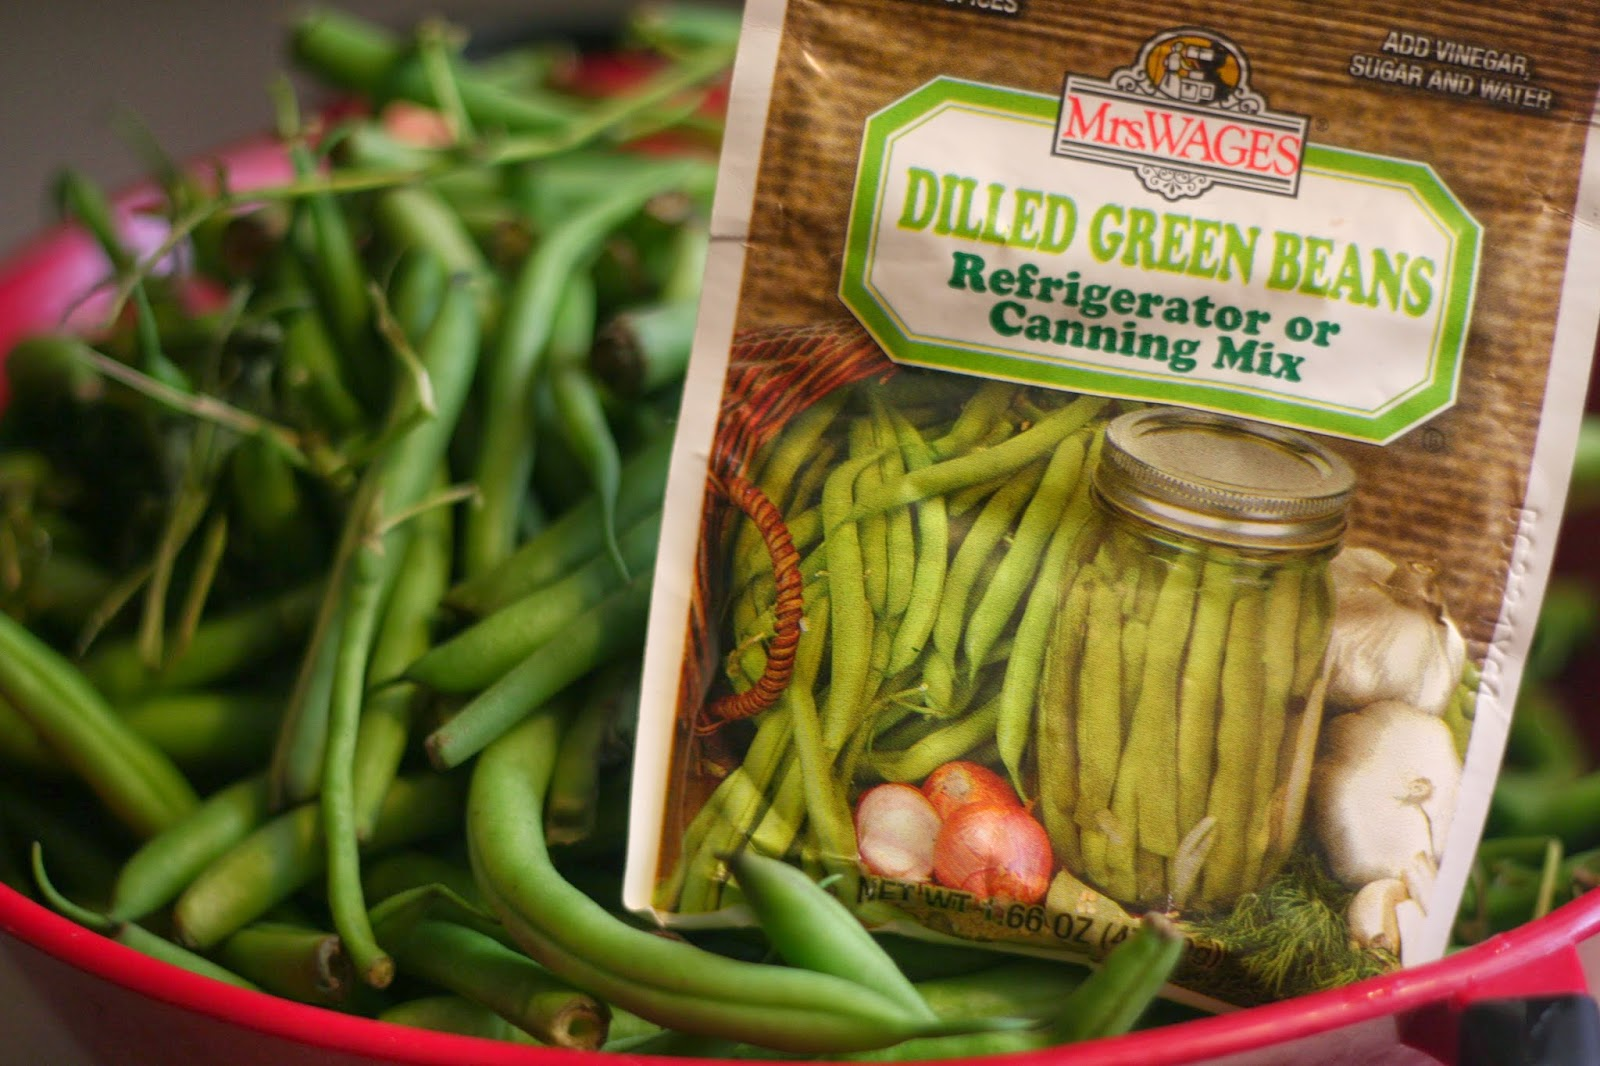 refrigerator dilly (dilled green) beans